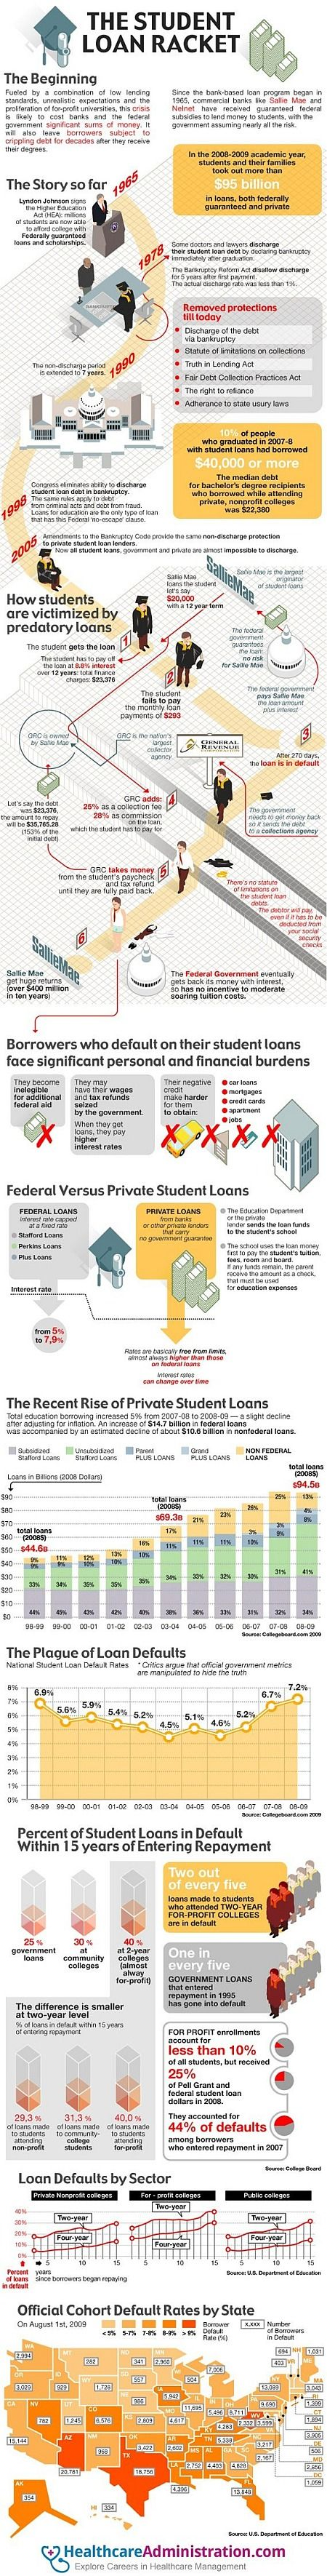 best student loan legislation the debt crisis images on  37 best student loan legislation the debt crisis images college life student life and student loan debt